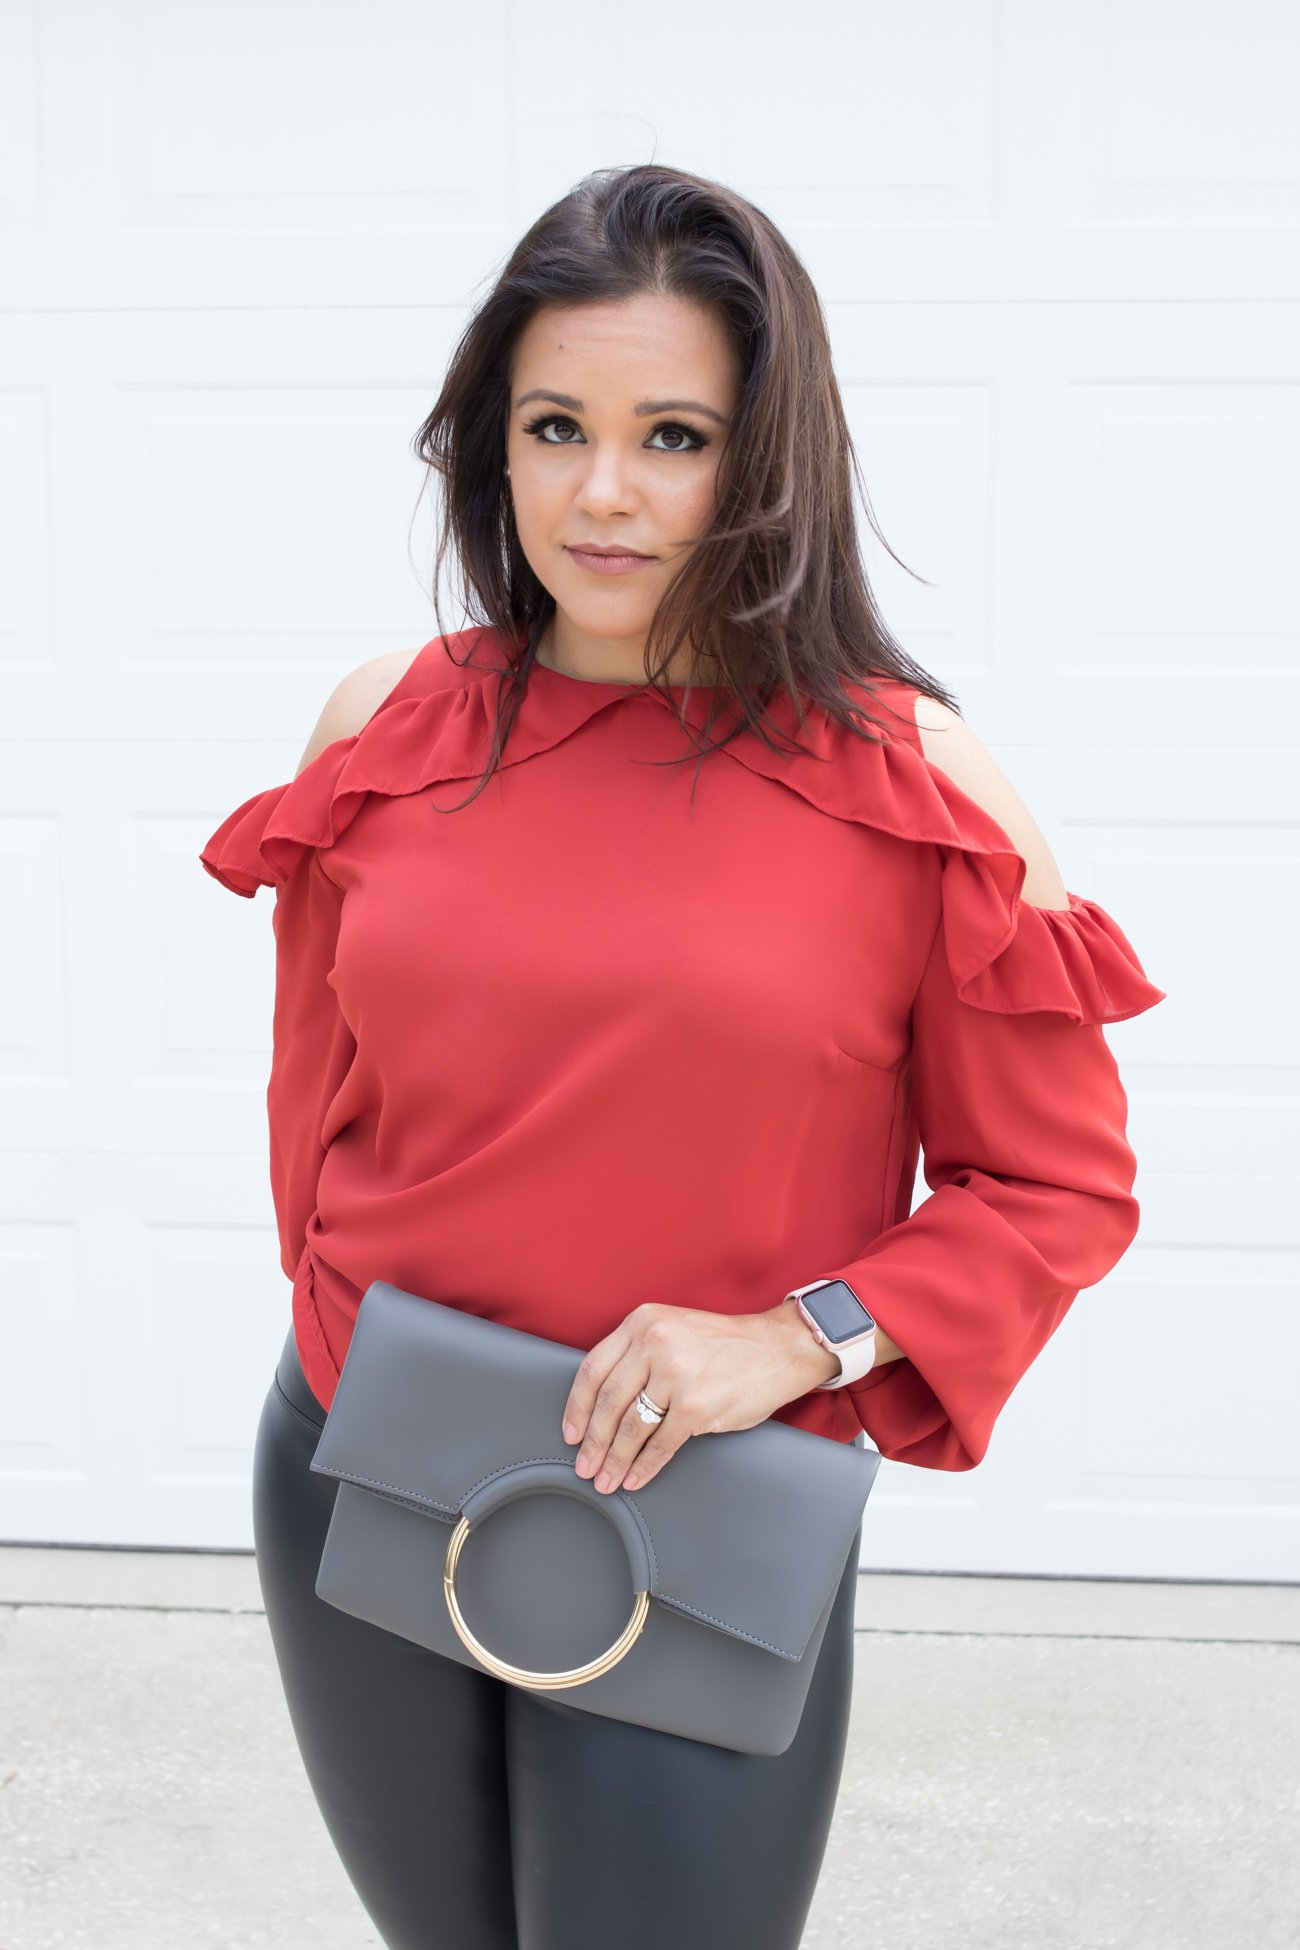 Unique Gifts for Her   La La Lisette - Are you still looking for unique gifts for her? These gifts are perfect for the person who has everything and are a little hard to shop for. Le Tote subscription red ruffle top and faux leather leggings #wishlistbbxx